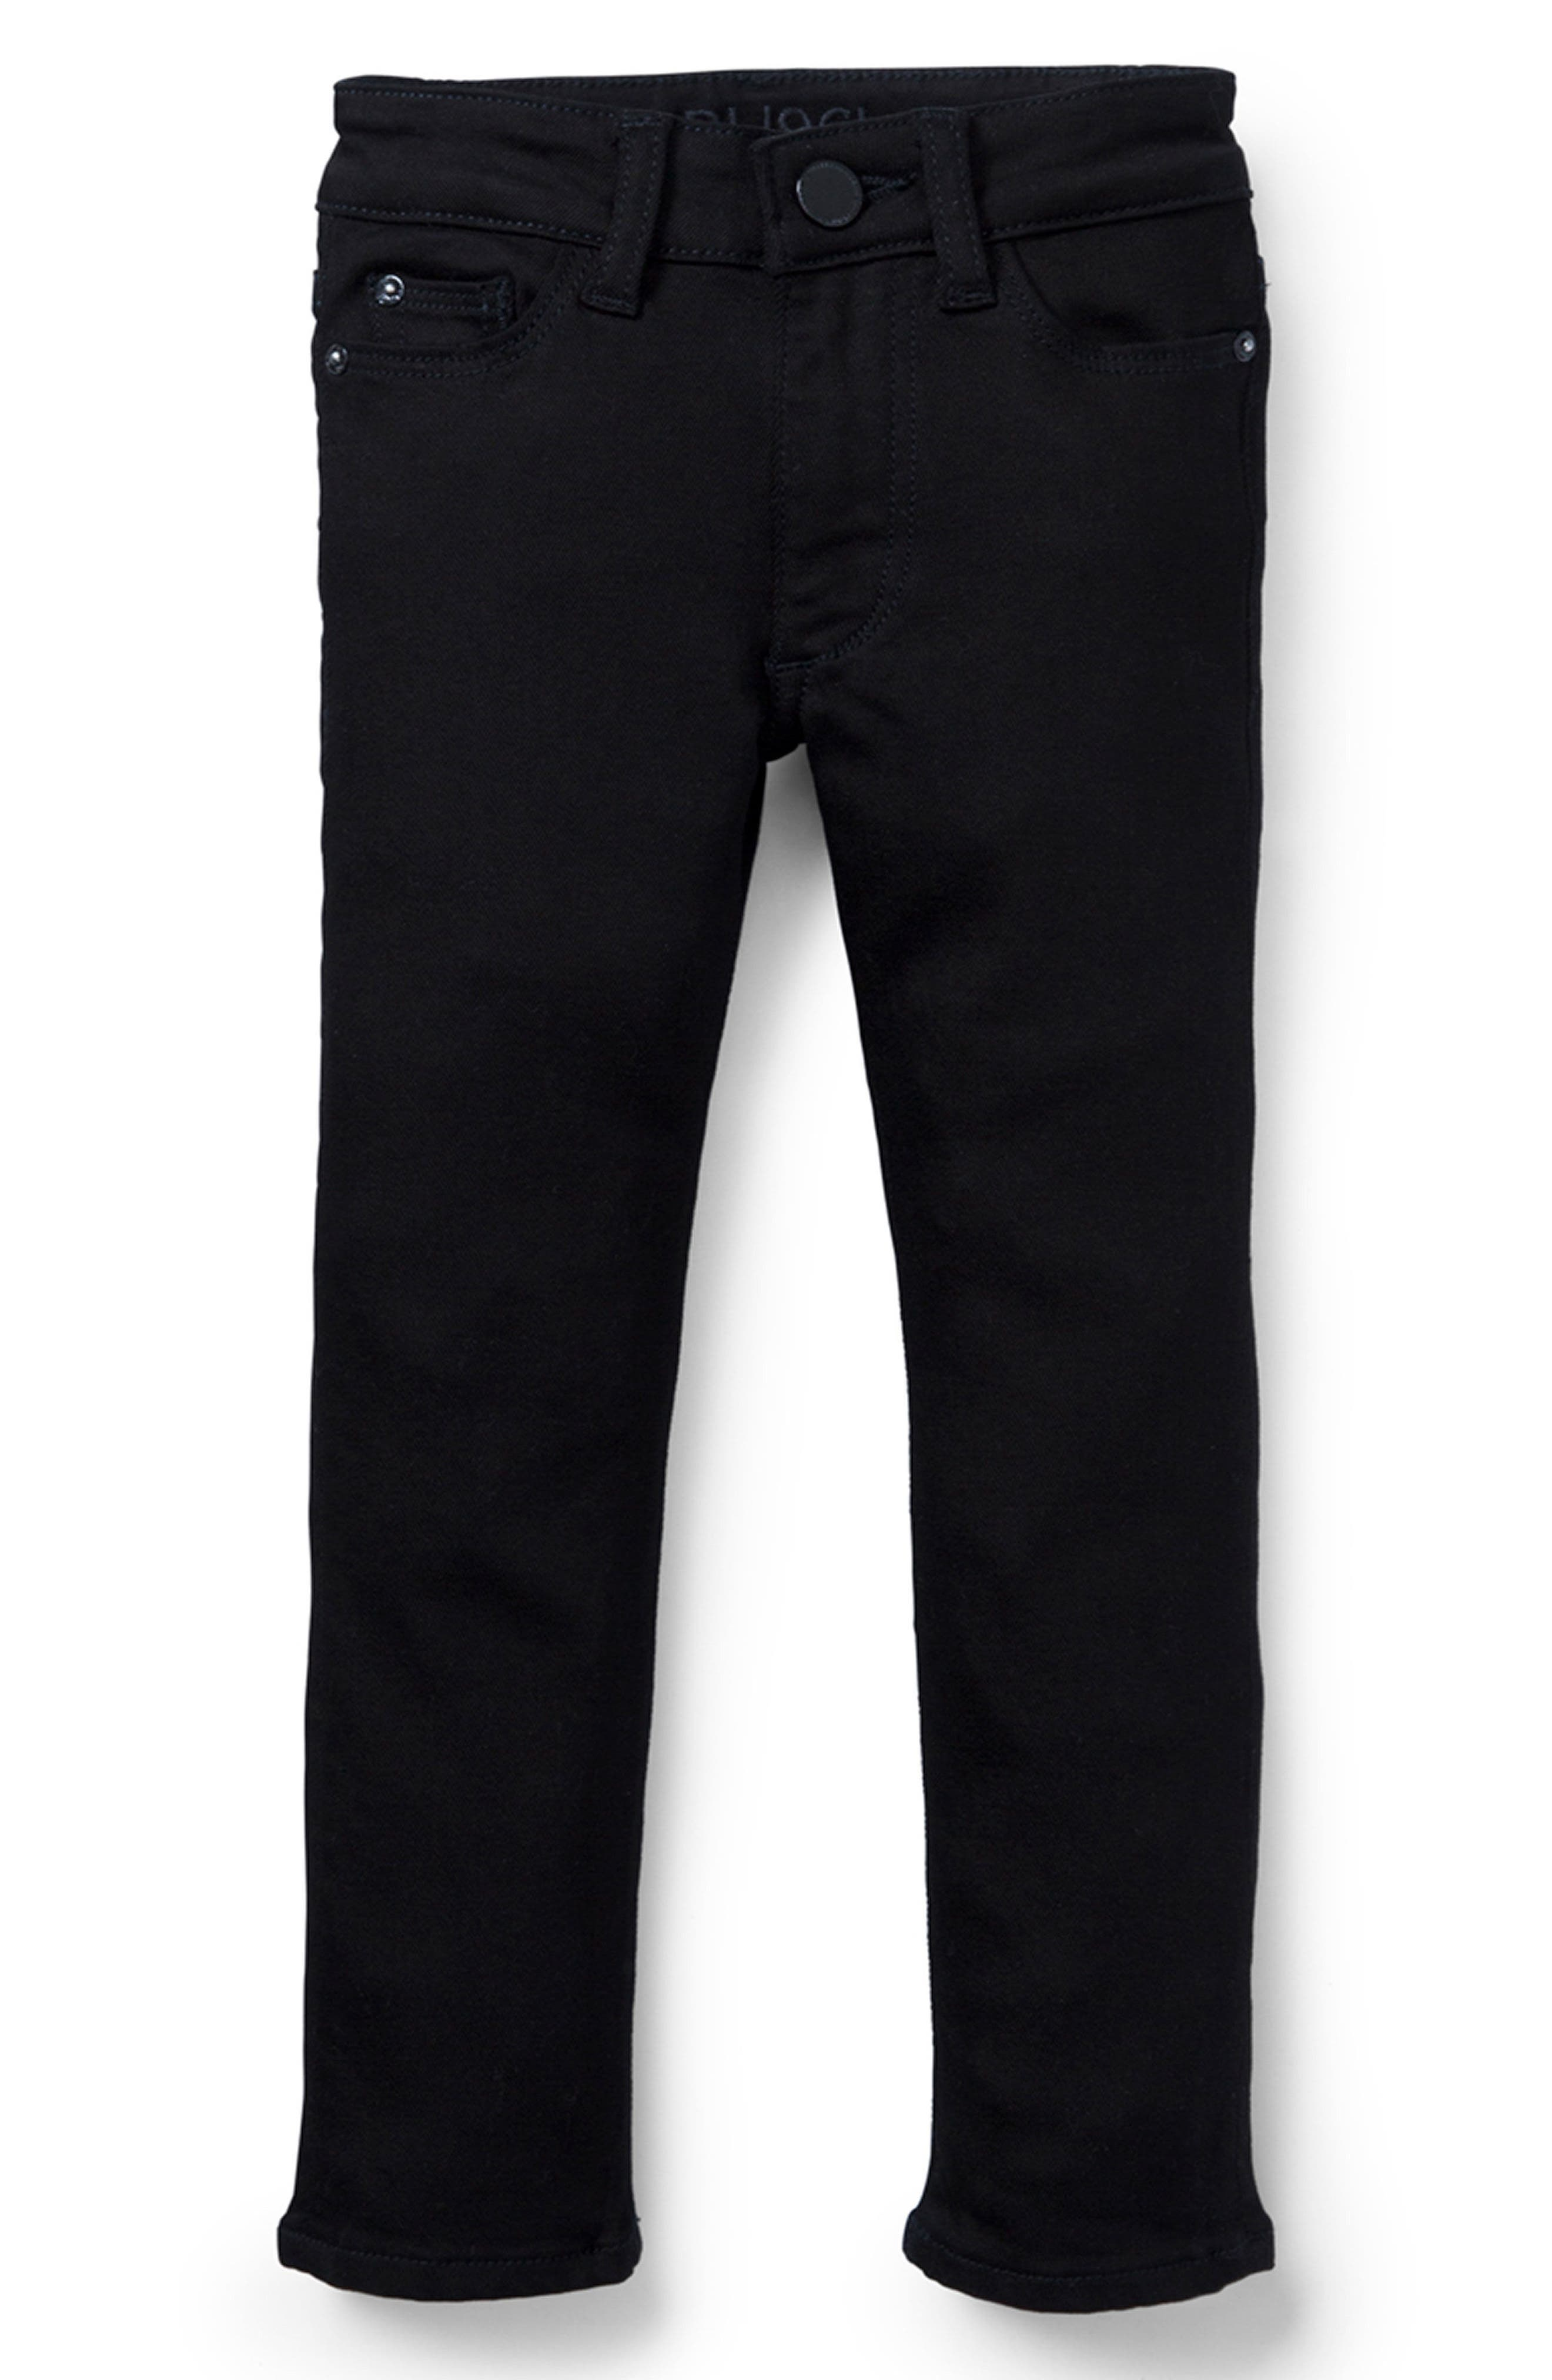 DL1961 Stretch Skinny Jeans (Toddler Girls & Little Girls)